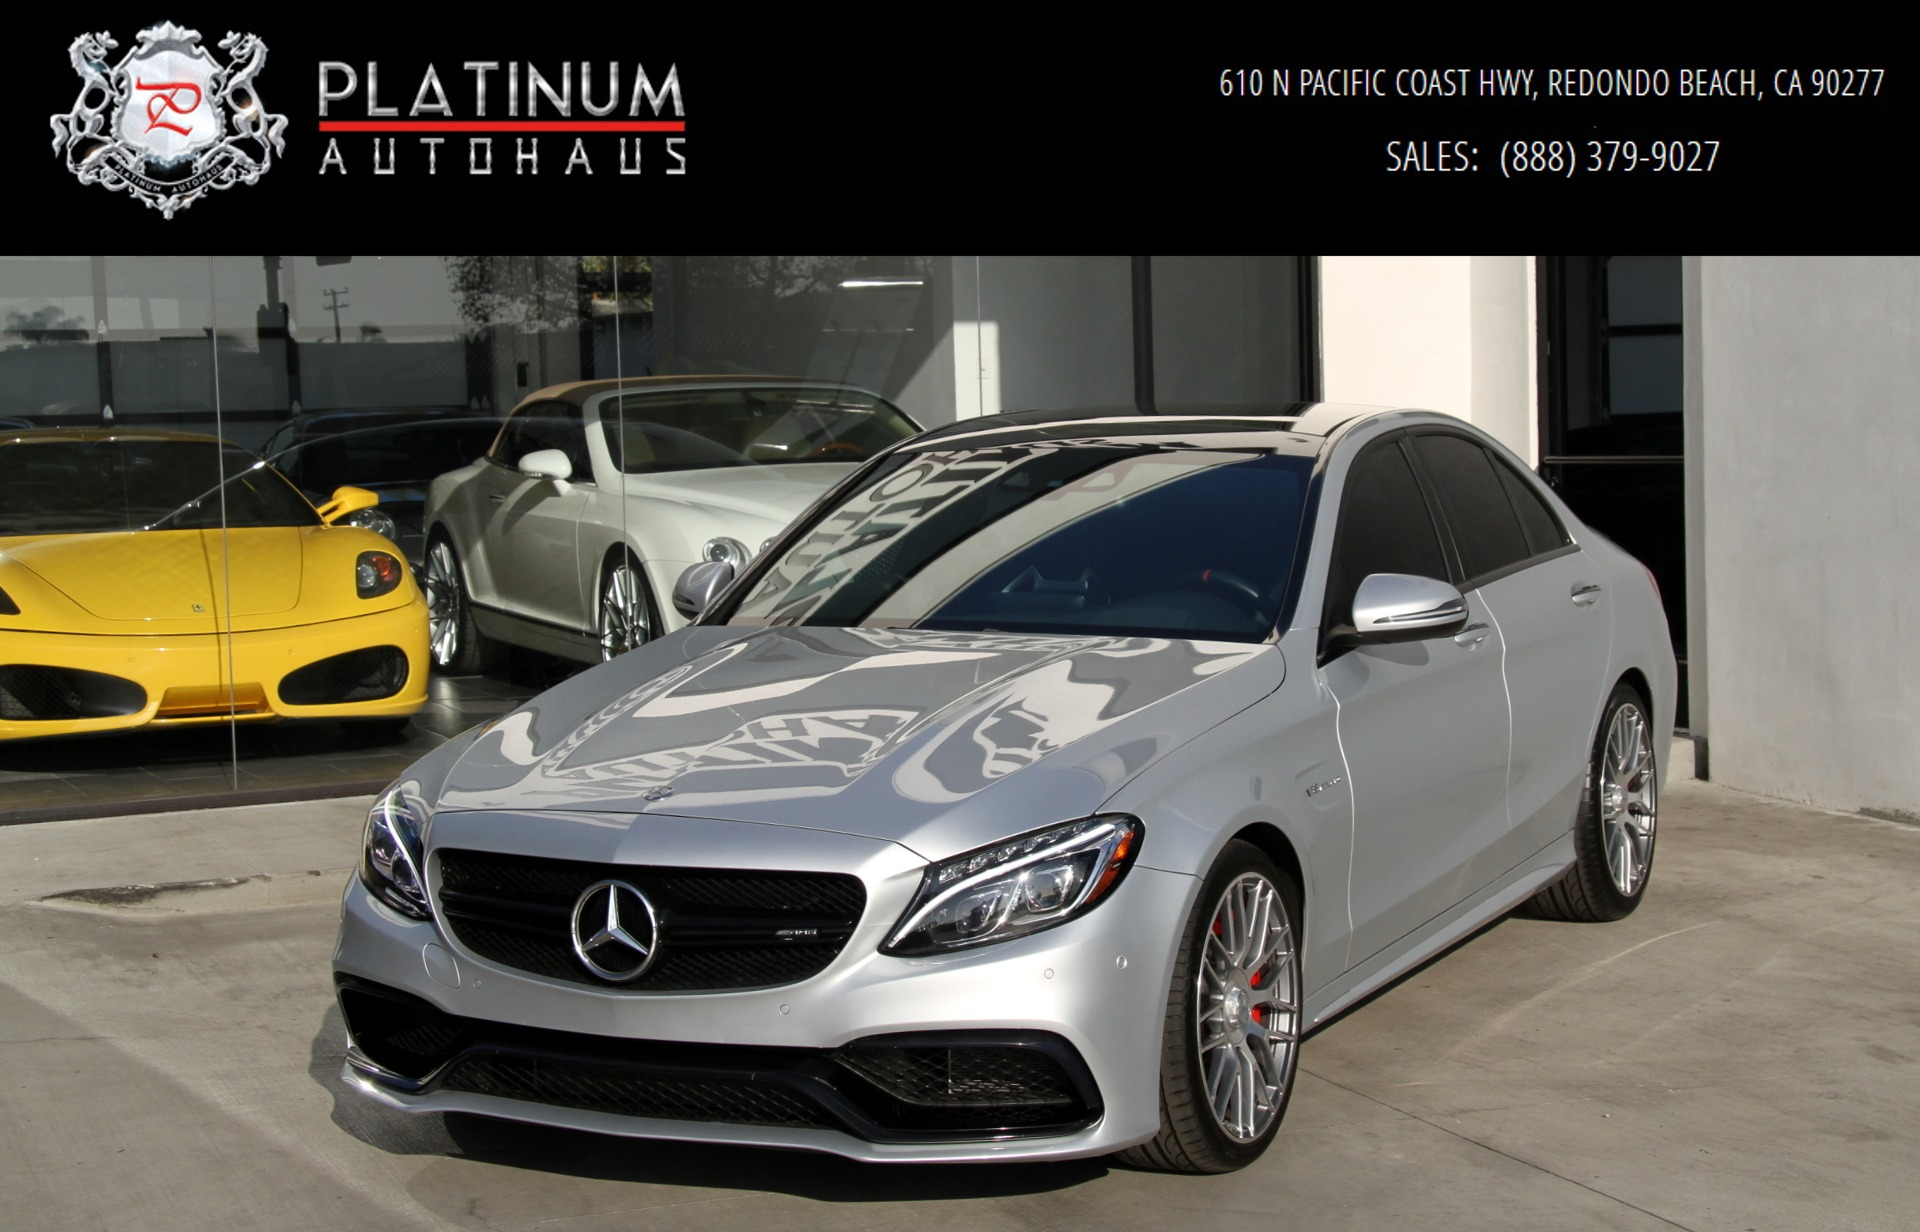 Mercedes Garage Near Me 2016 Mercedes Benz C63 S Amg Stock 6004 For Sale Near Redondo